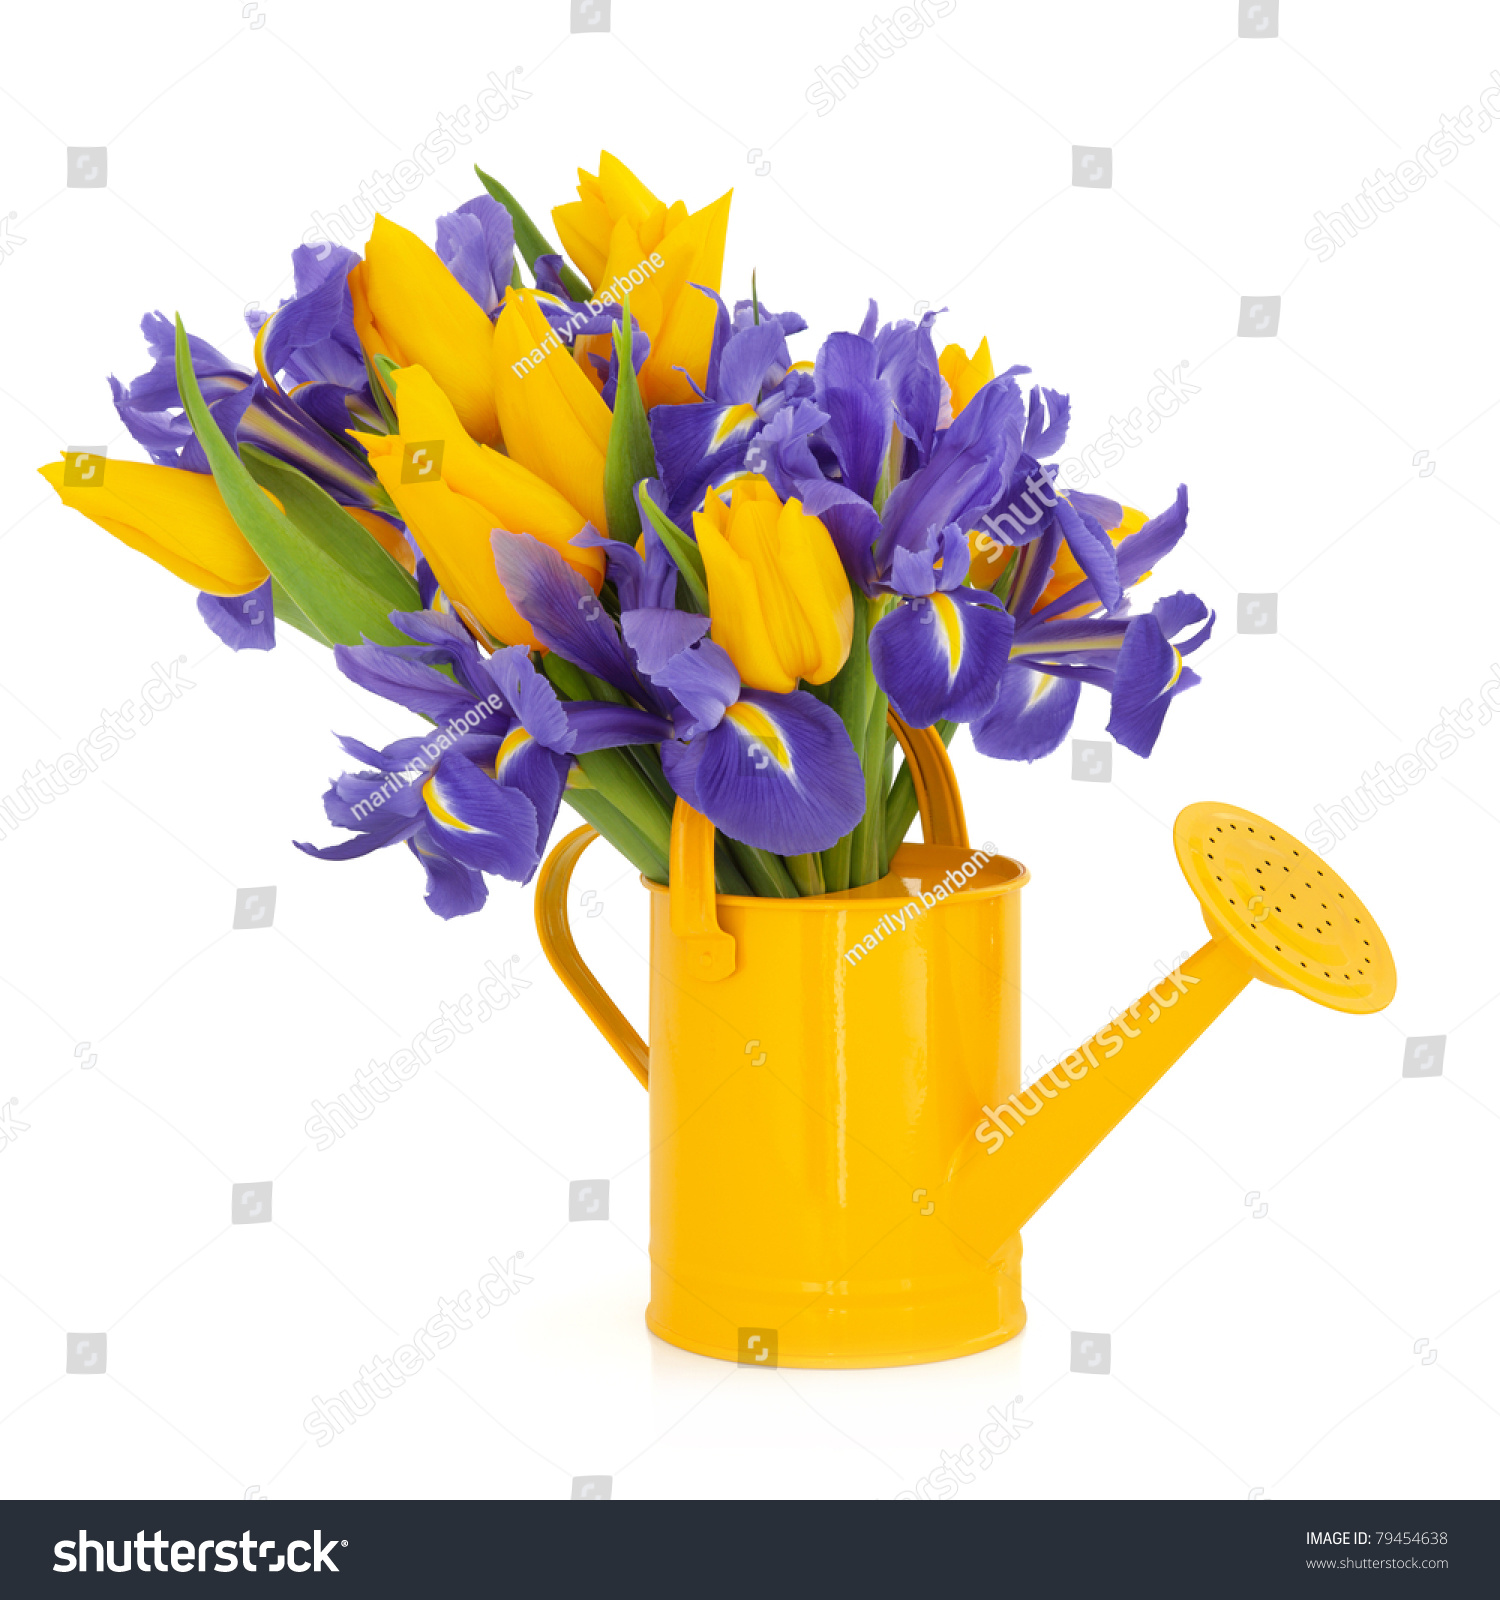 Yellow Tulip Blue Flag Iris Flower Stock Photo Edit Now 79454638